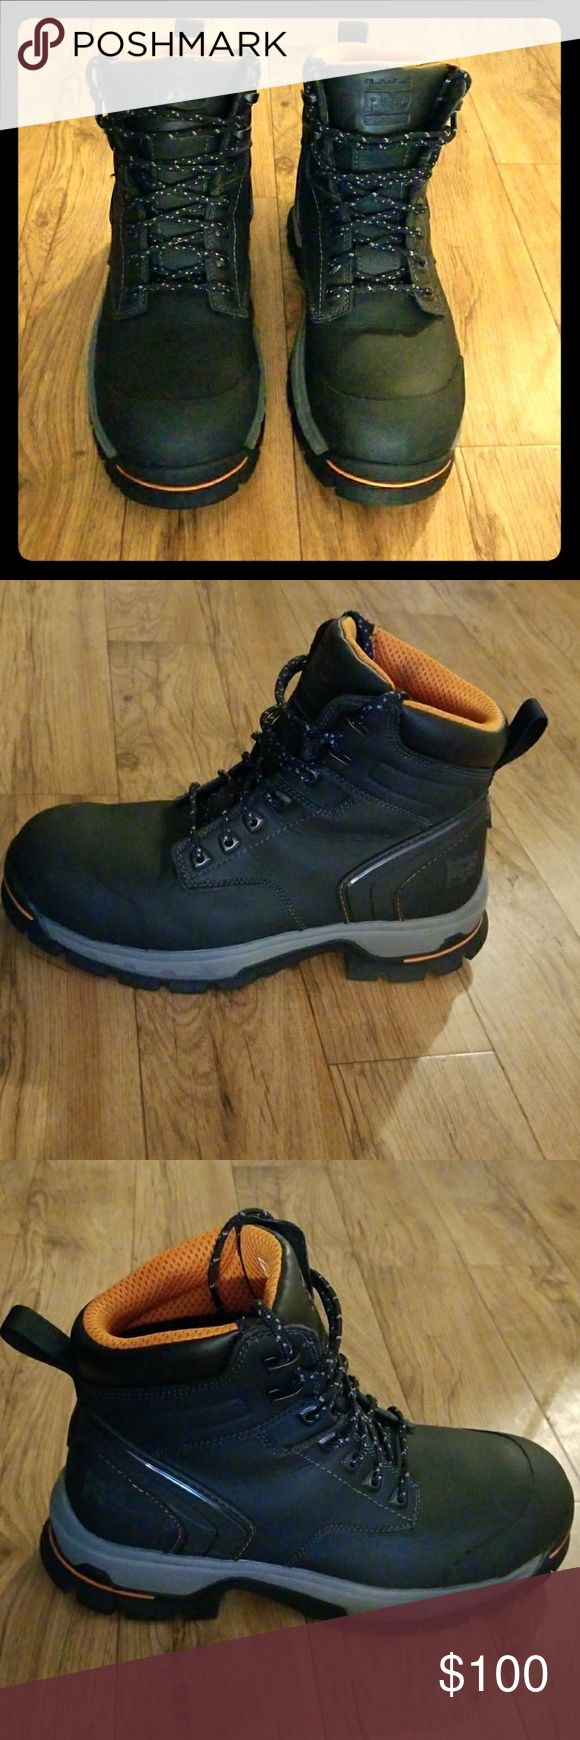 "Timberland Pro boots Timberland Pro boots Stockdale 6"" Alloy Safety Toe 1064.   Only wore once not the right fight for me. Timberland Shoes Boots"